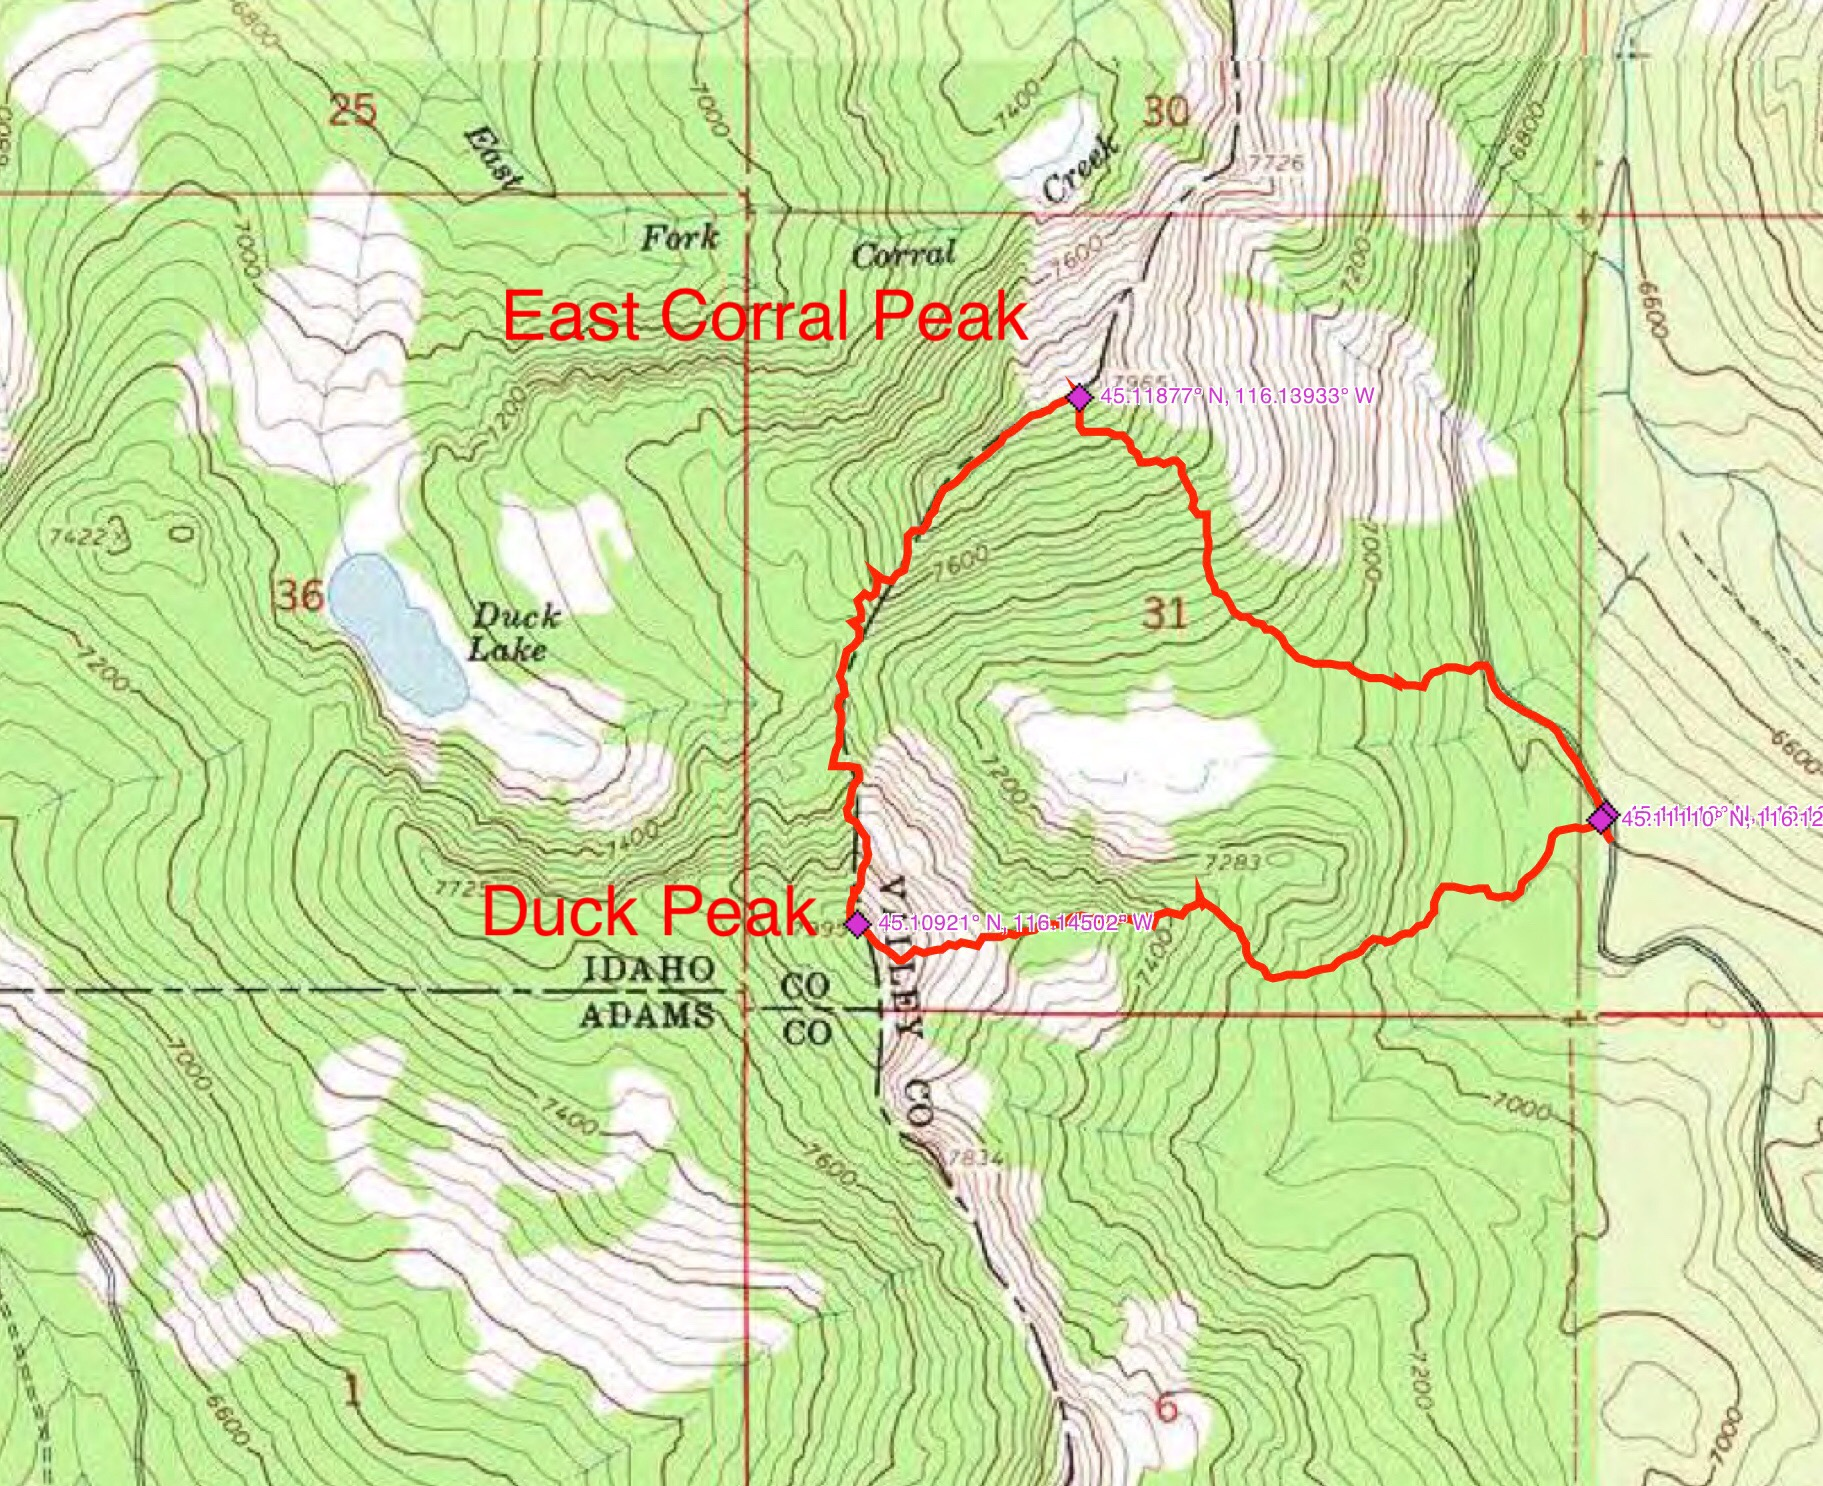 John Platt's GPS track showing his route climbing up Duck Peak's east ridge and then traversing north to East Corral Peak.